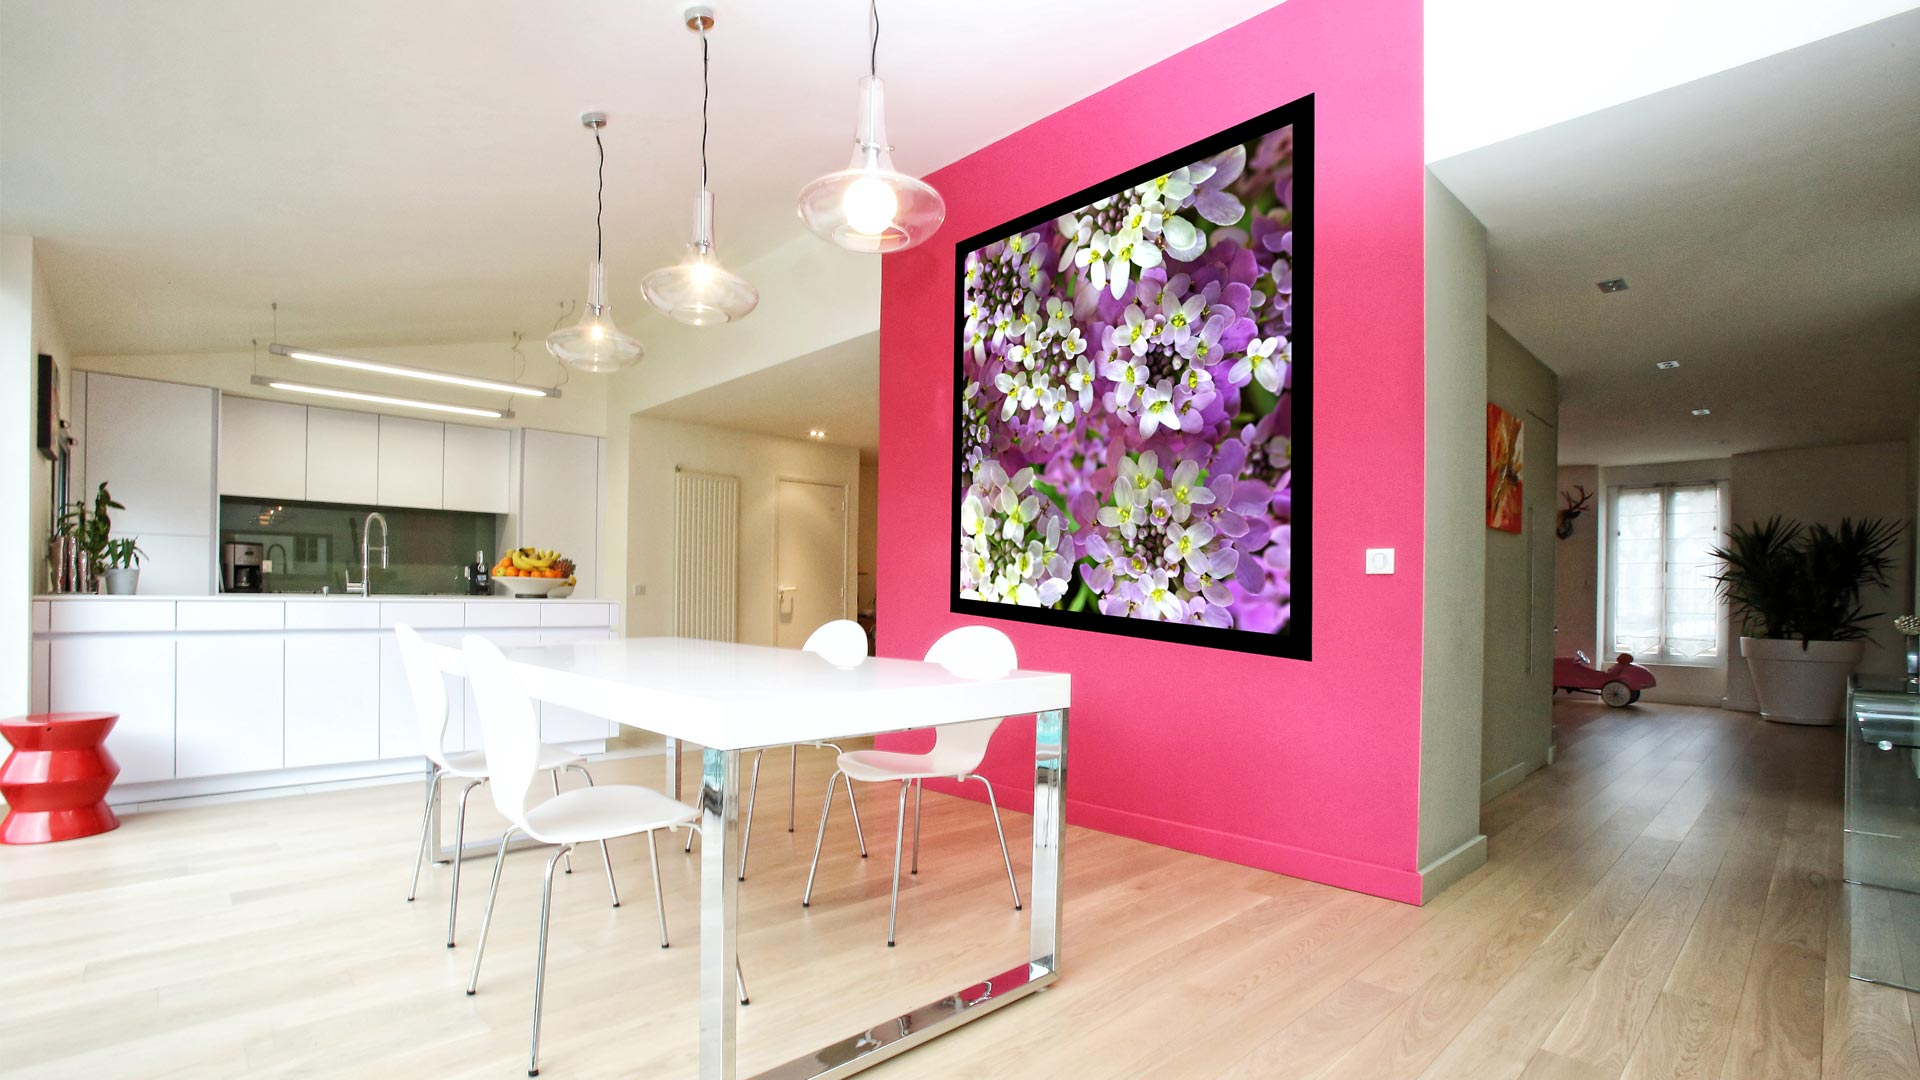 Photo decoration interieure meilleures images d for Des idees de decoration interieure